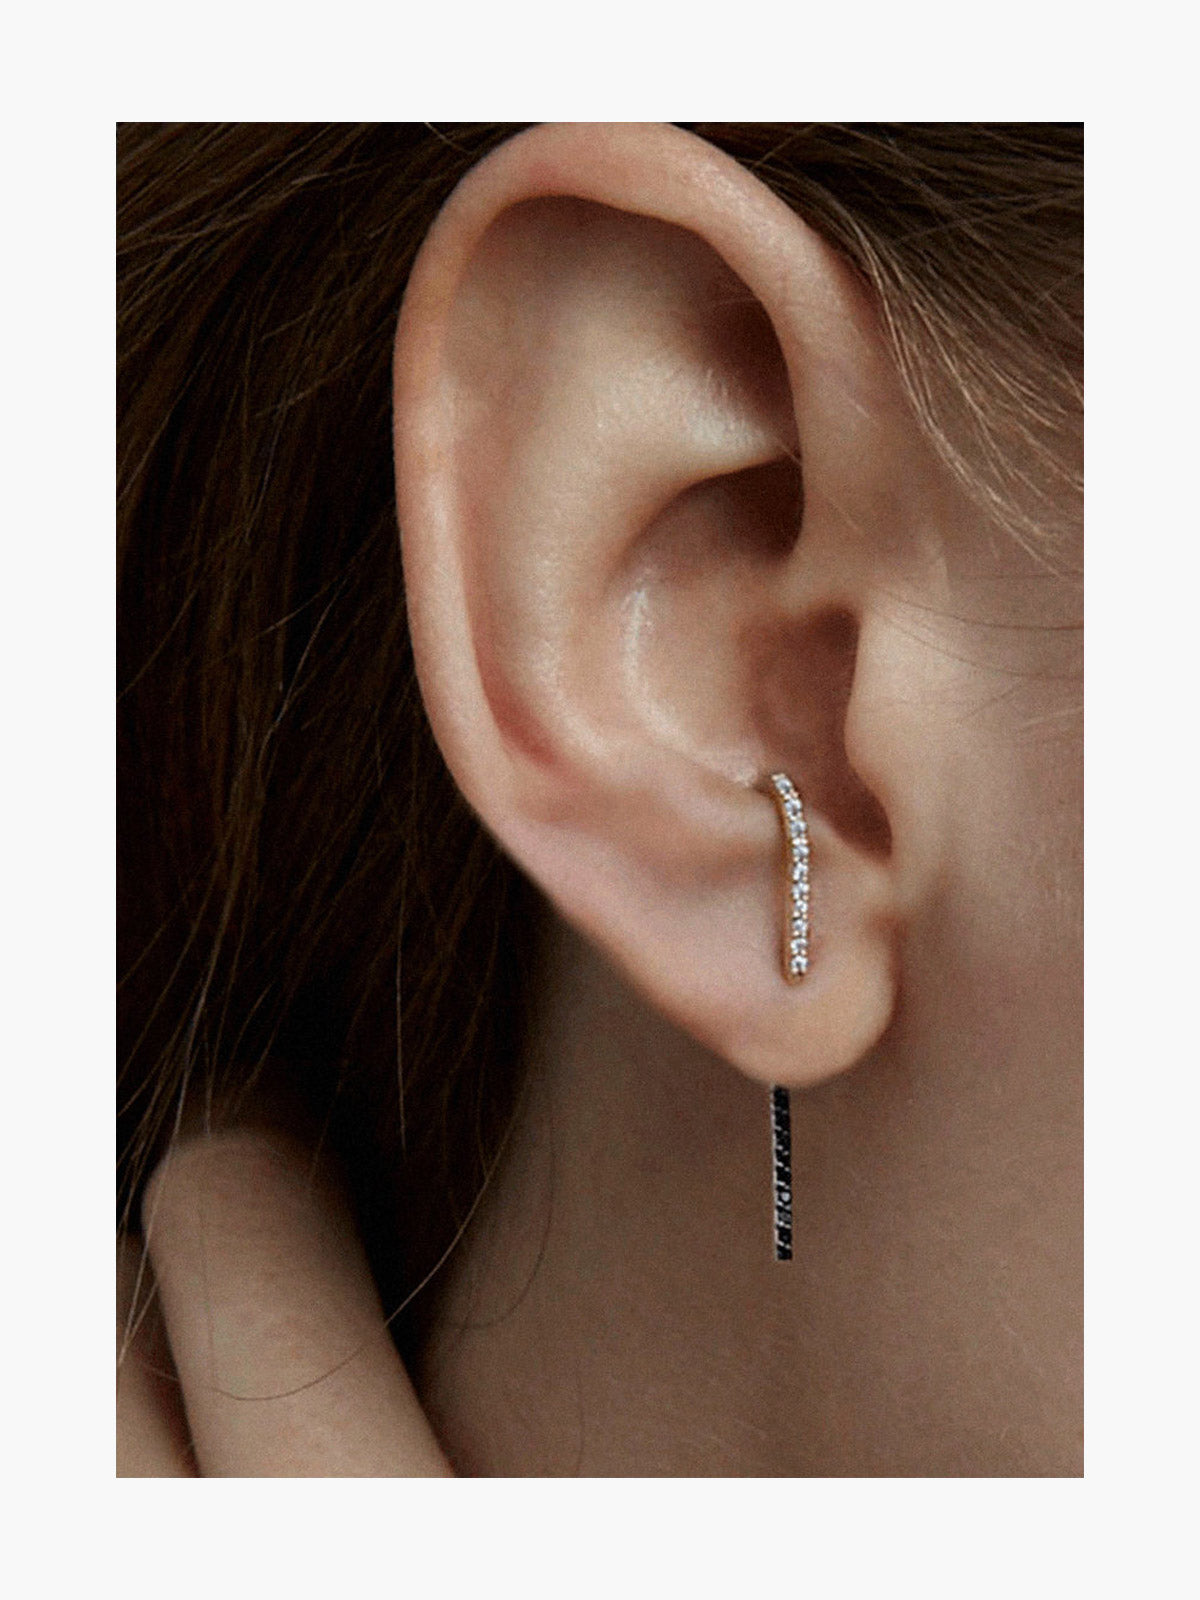 The Petite Ear Pin Pink Ombré